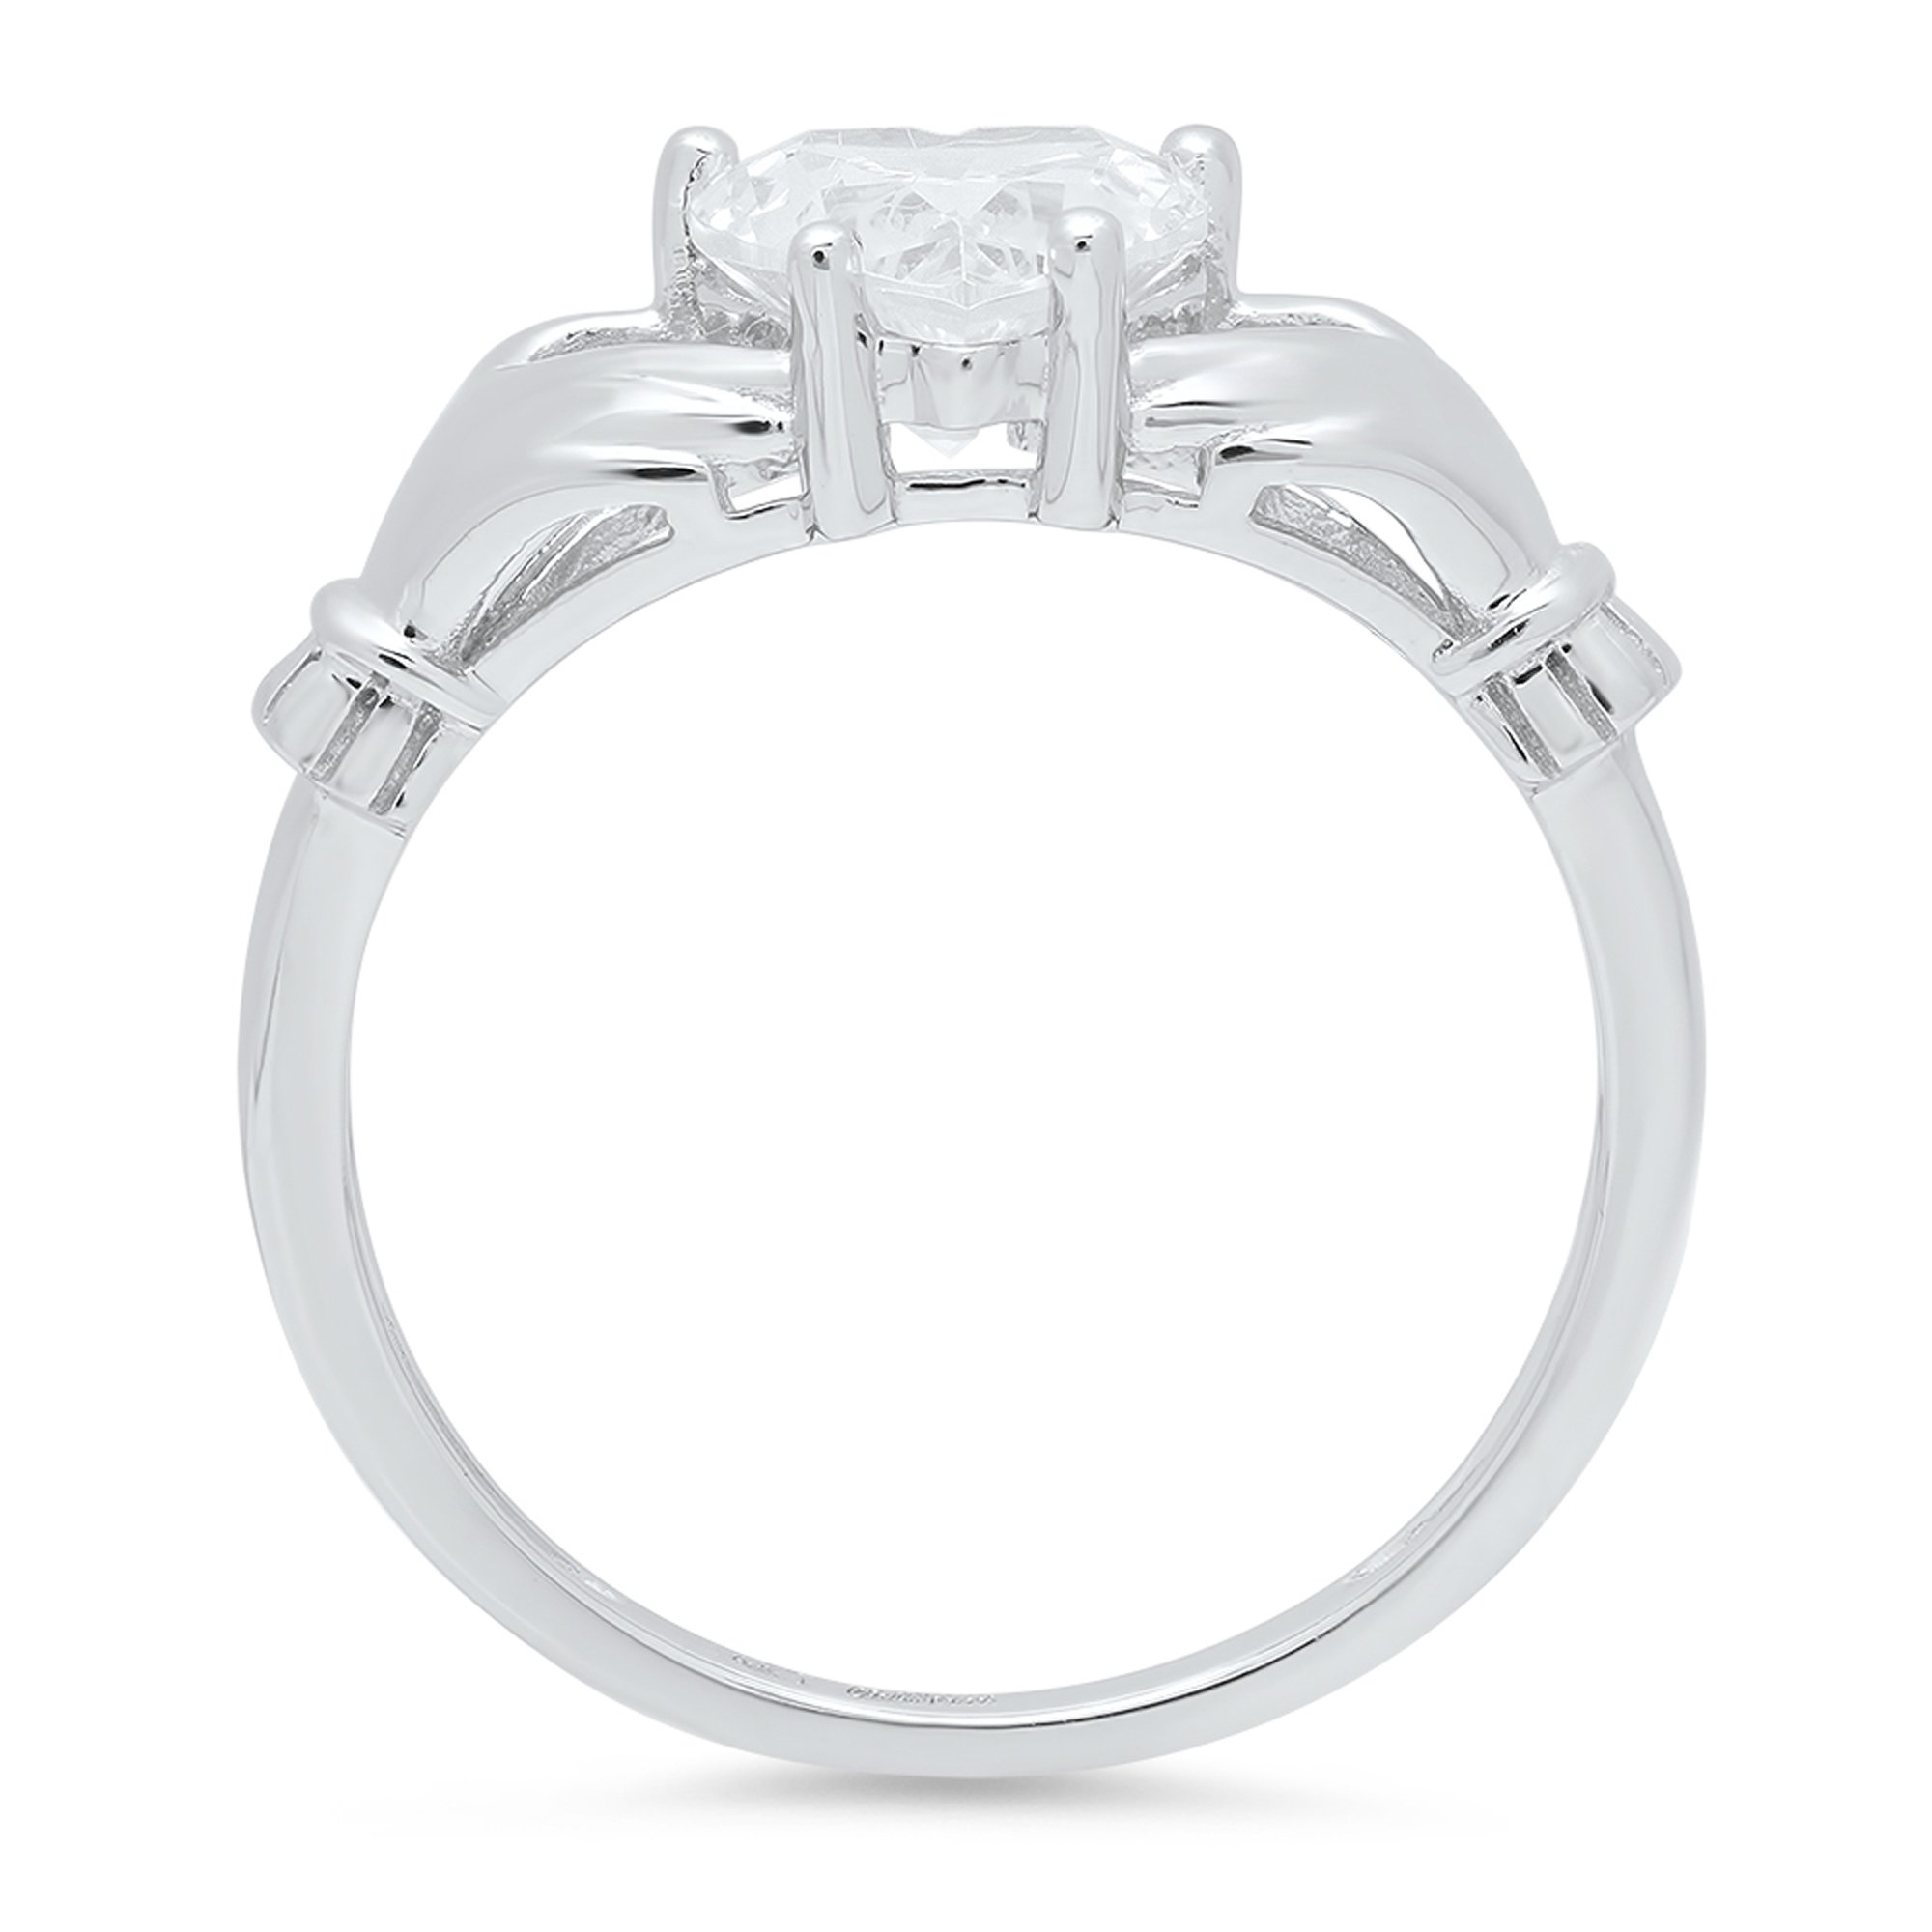 1.55 ct Brilliant Heart Cut Simulated Diamond CZ Designer Irish Celtic Claddagh Solitaire Wedding Promise Ring in Solid 14k White Gold by Clara Pucci (Image #2)